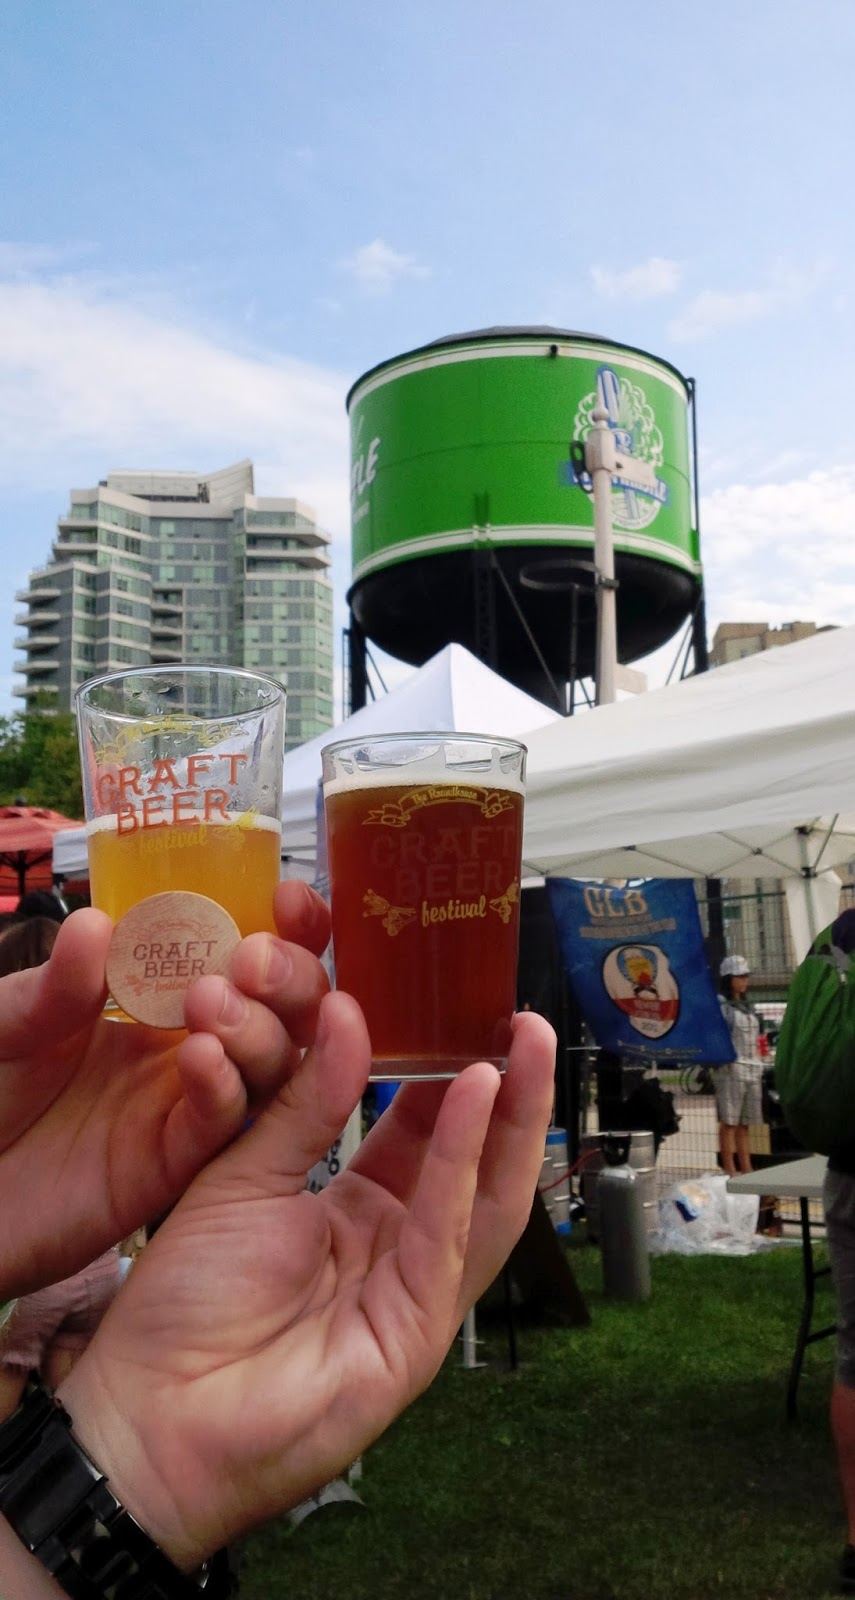 Beer festivals in toronto different strokes for for Craft beer festival toronto